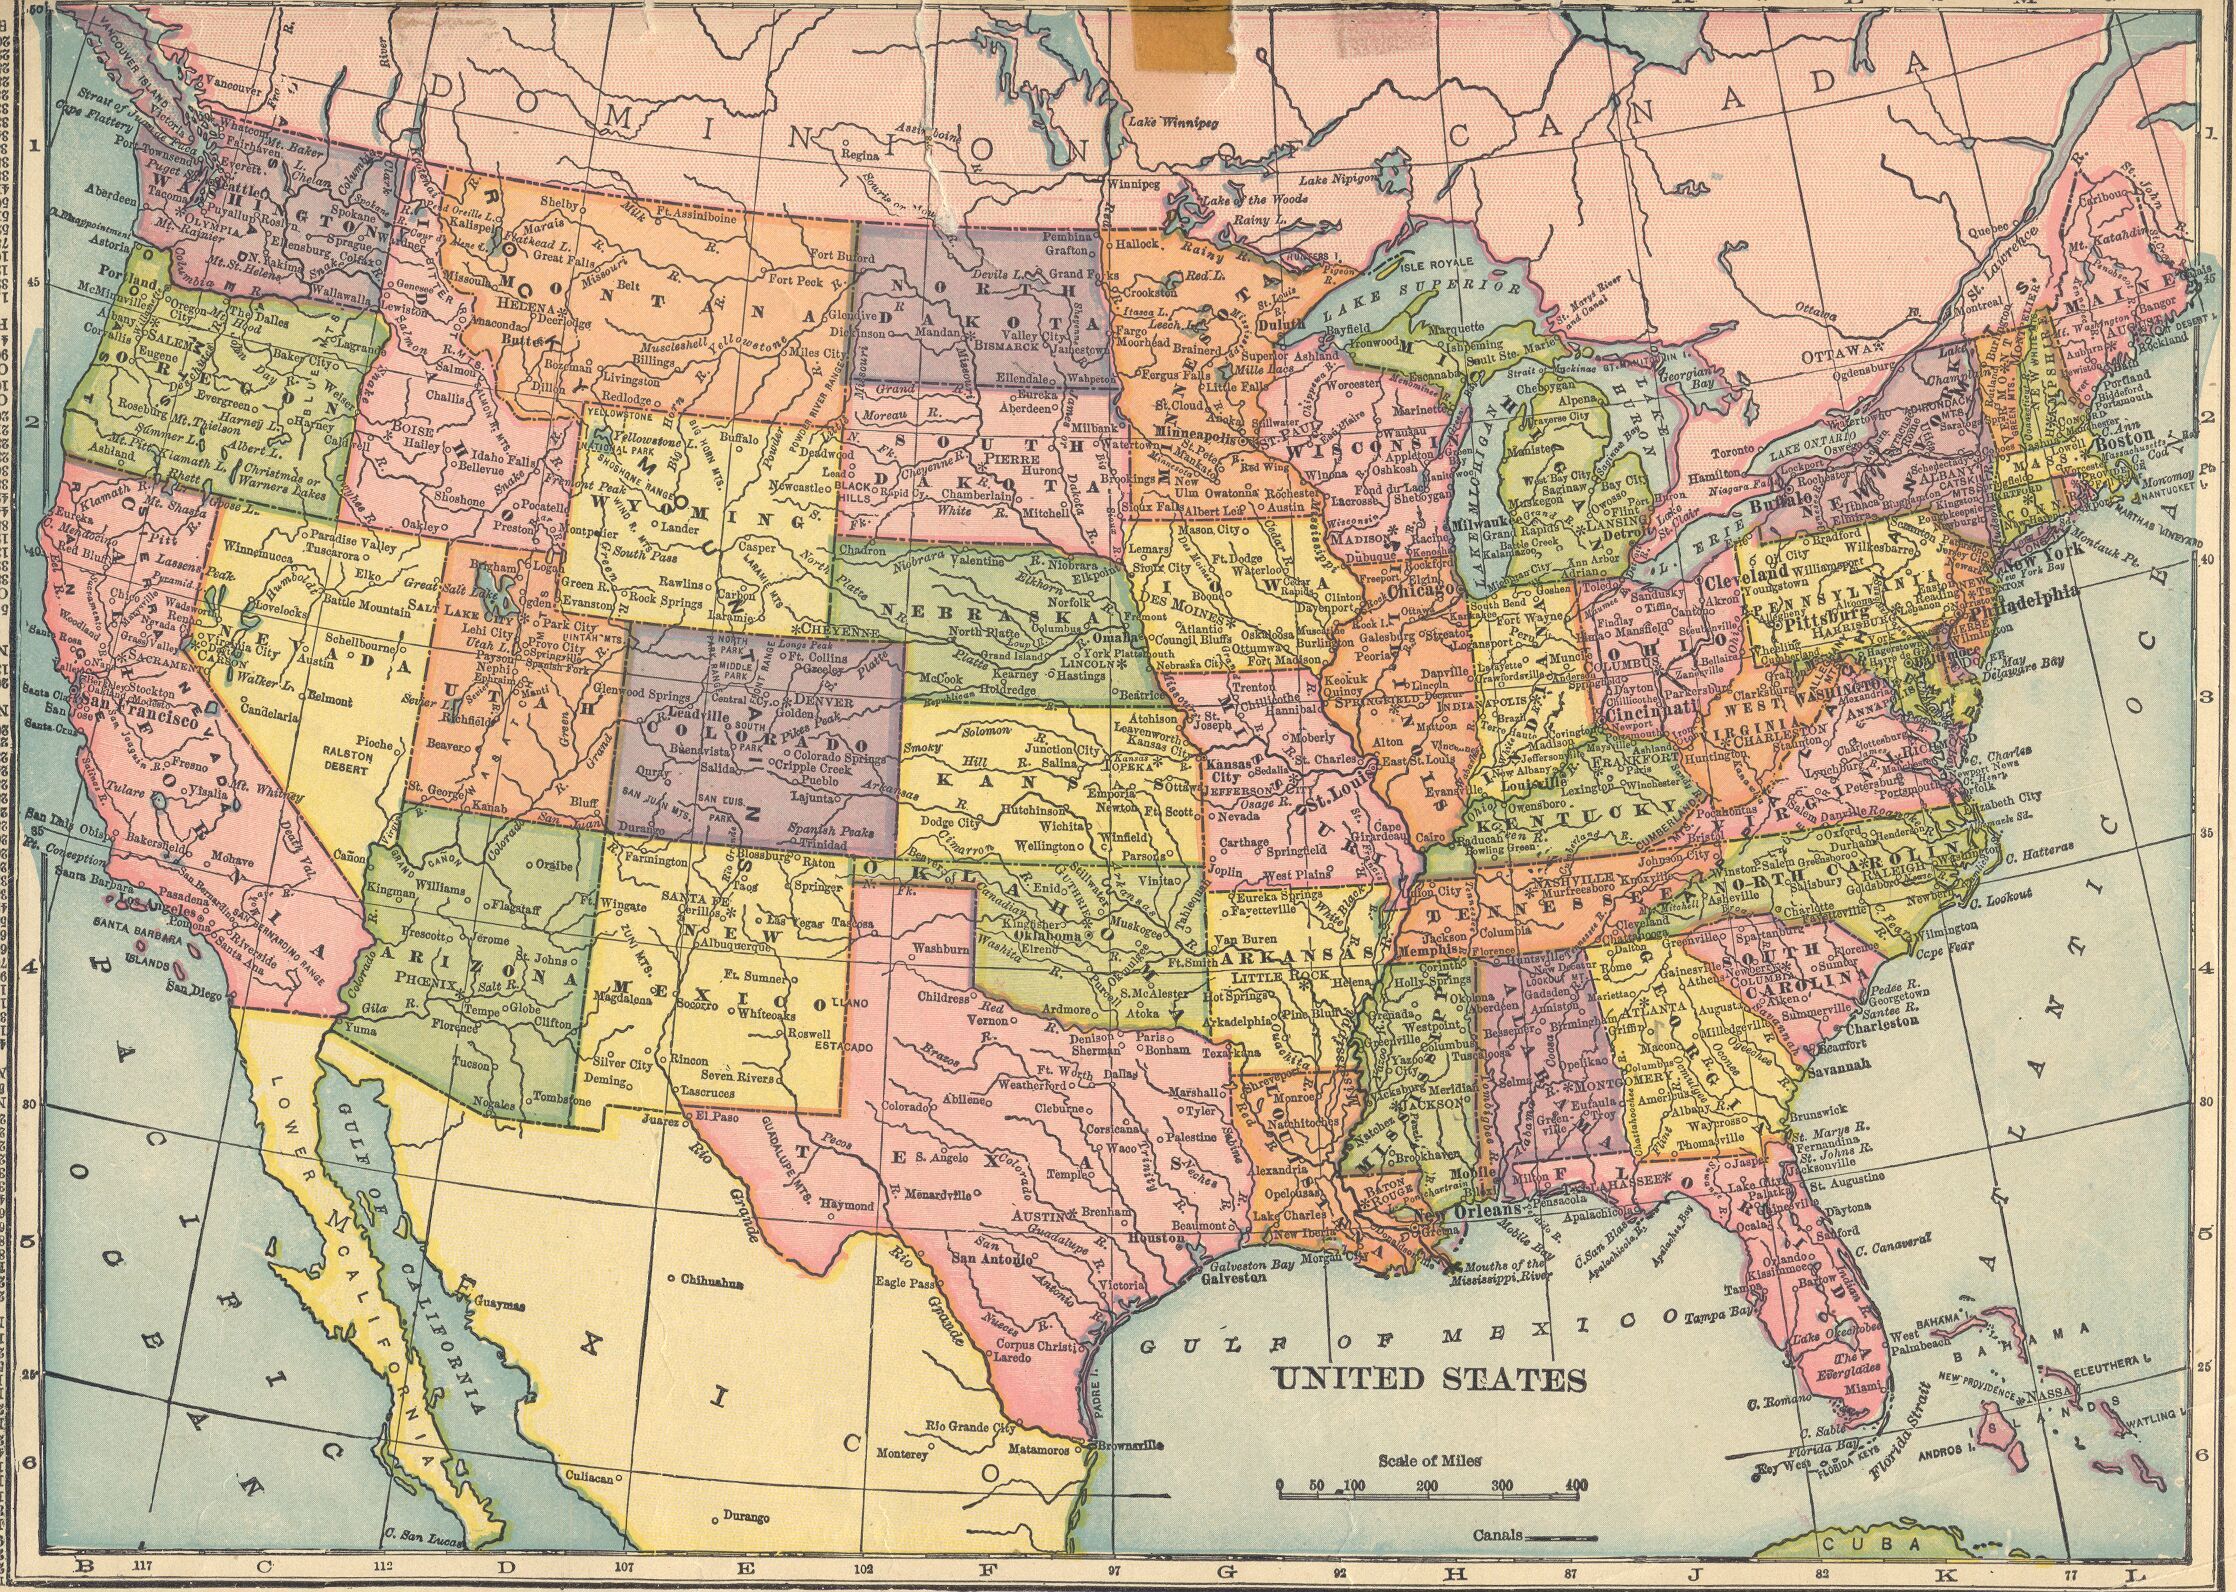 Map of the U.S. from C. S. Hammond & Company Atlas - 1910 - USGenWeb Project